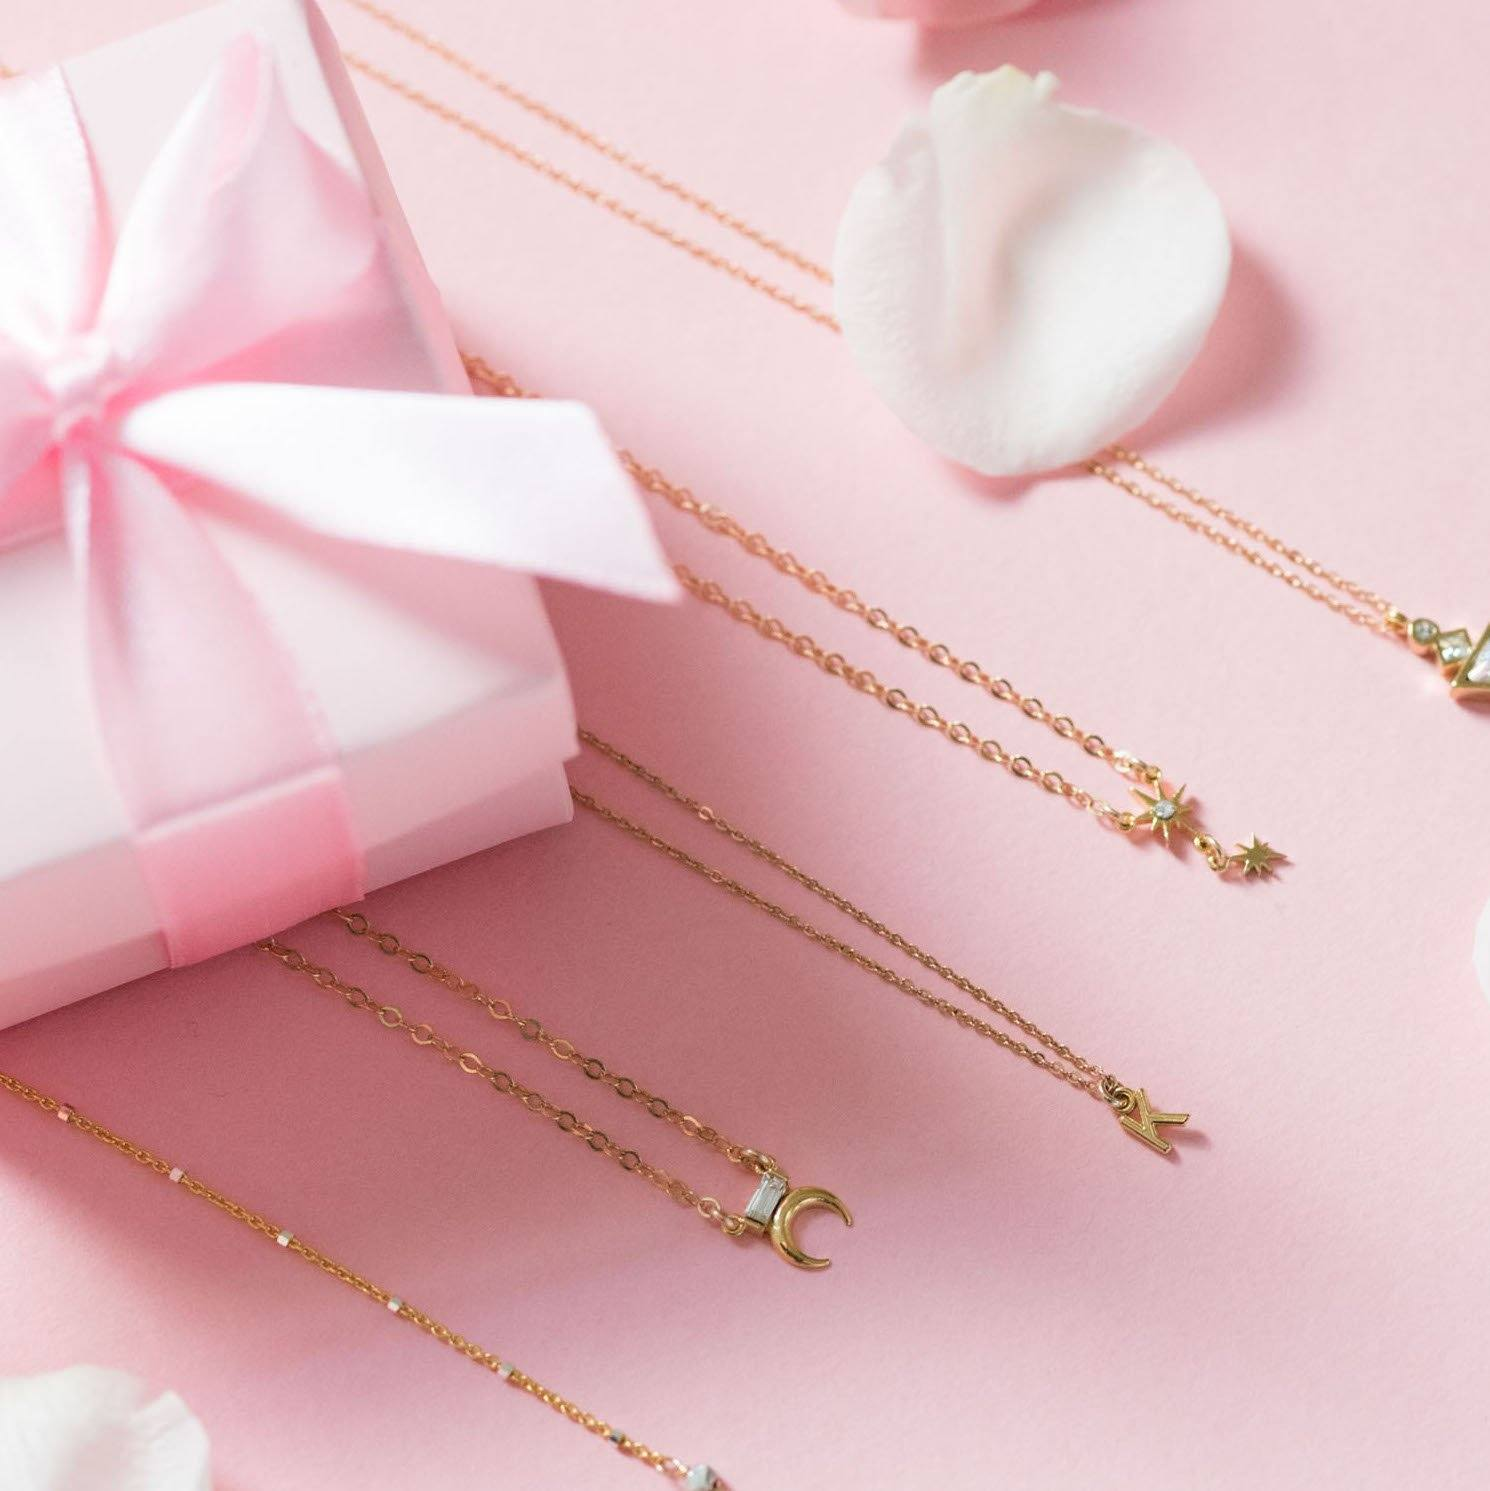 Katie Dean Jewelry on pink flat lay with pink box with pink bow.